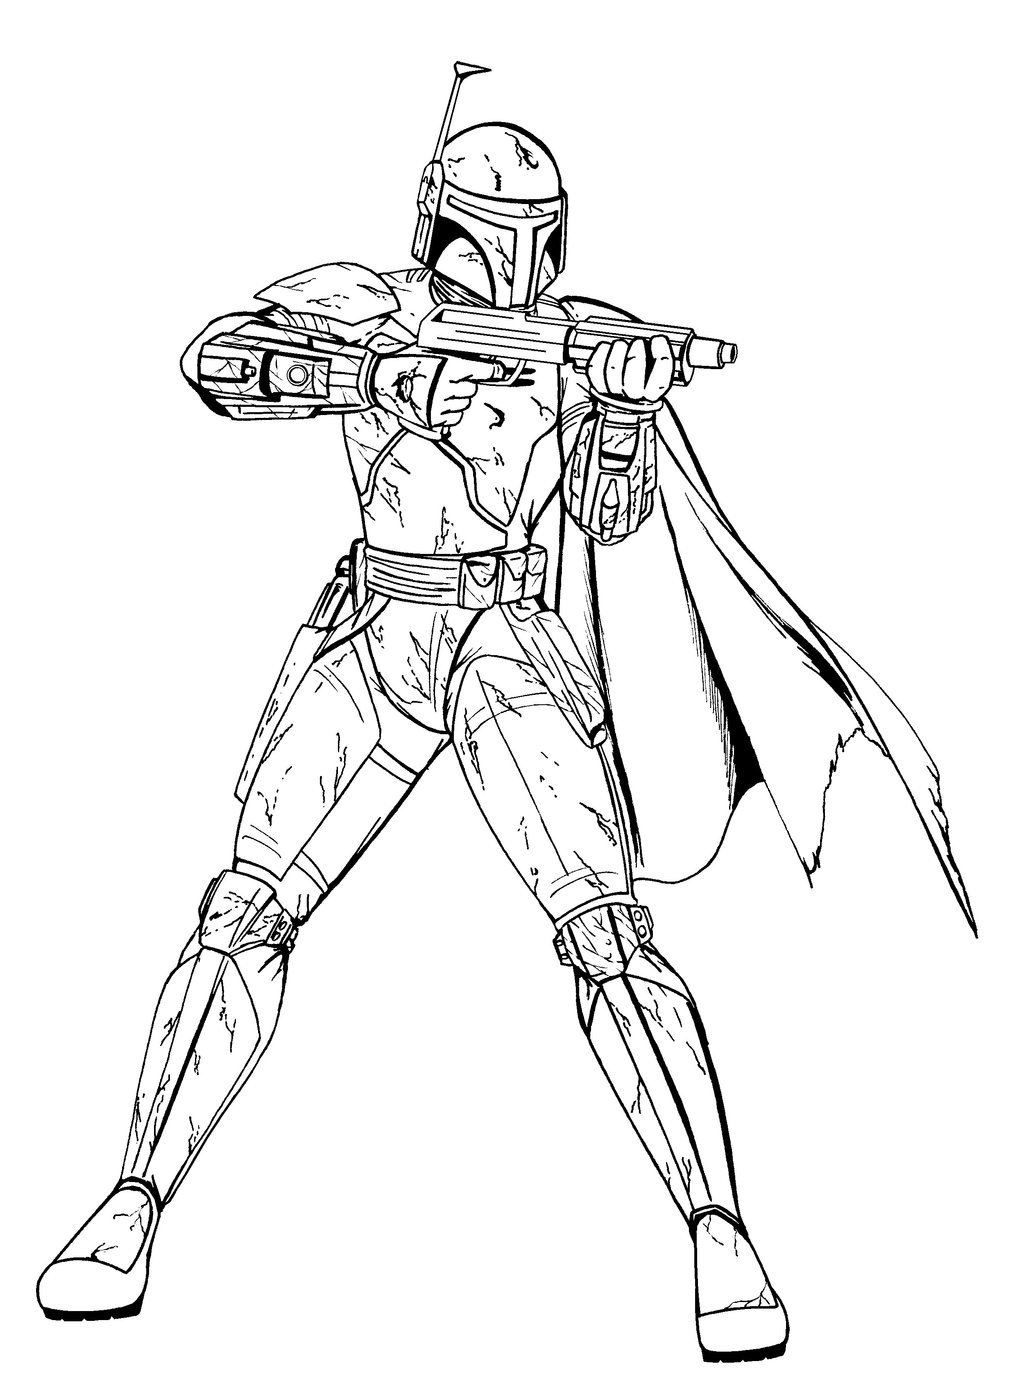 star wars pictures to print and color star wars clone wars coloring pages star print to pictures color wars and